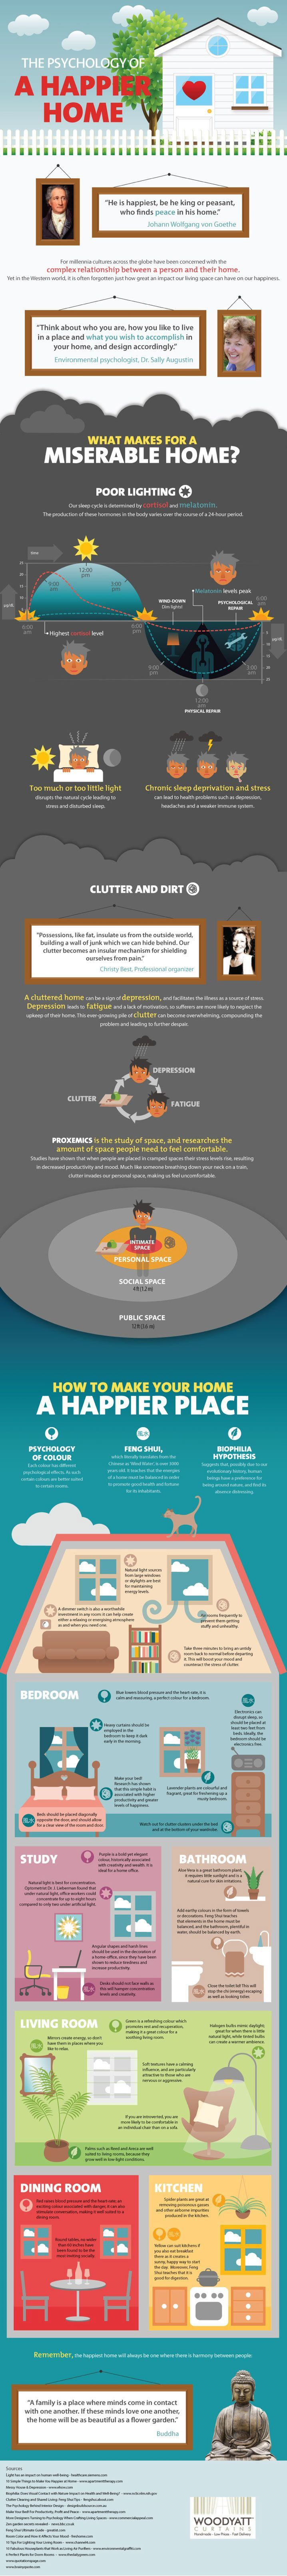 infographic feng shui. #INFOgraphic \u003e Make Happy Home: Color Psychology, Feng Shui And Biophilia Are Effective Infographic